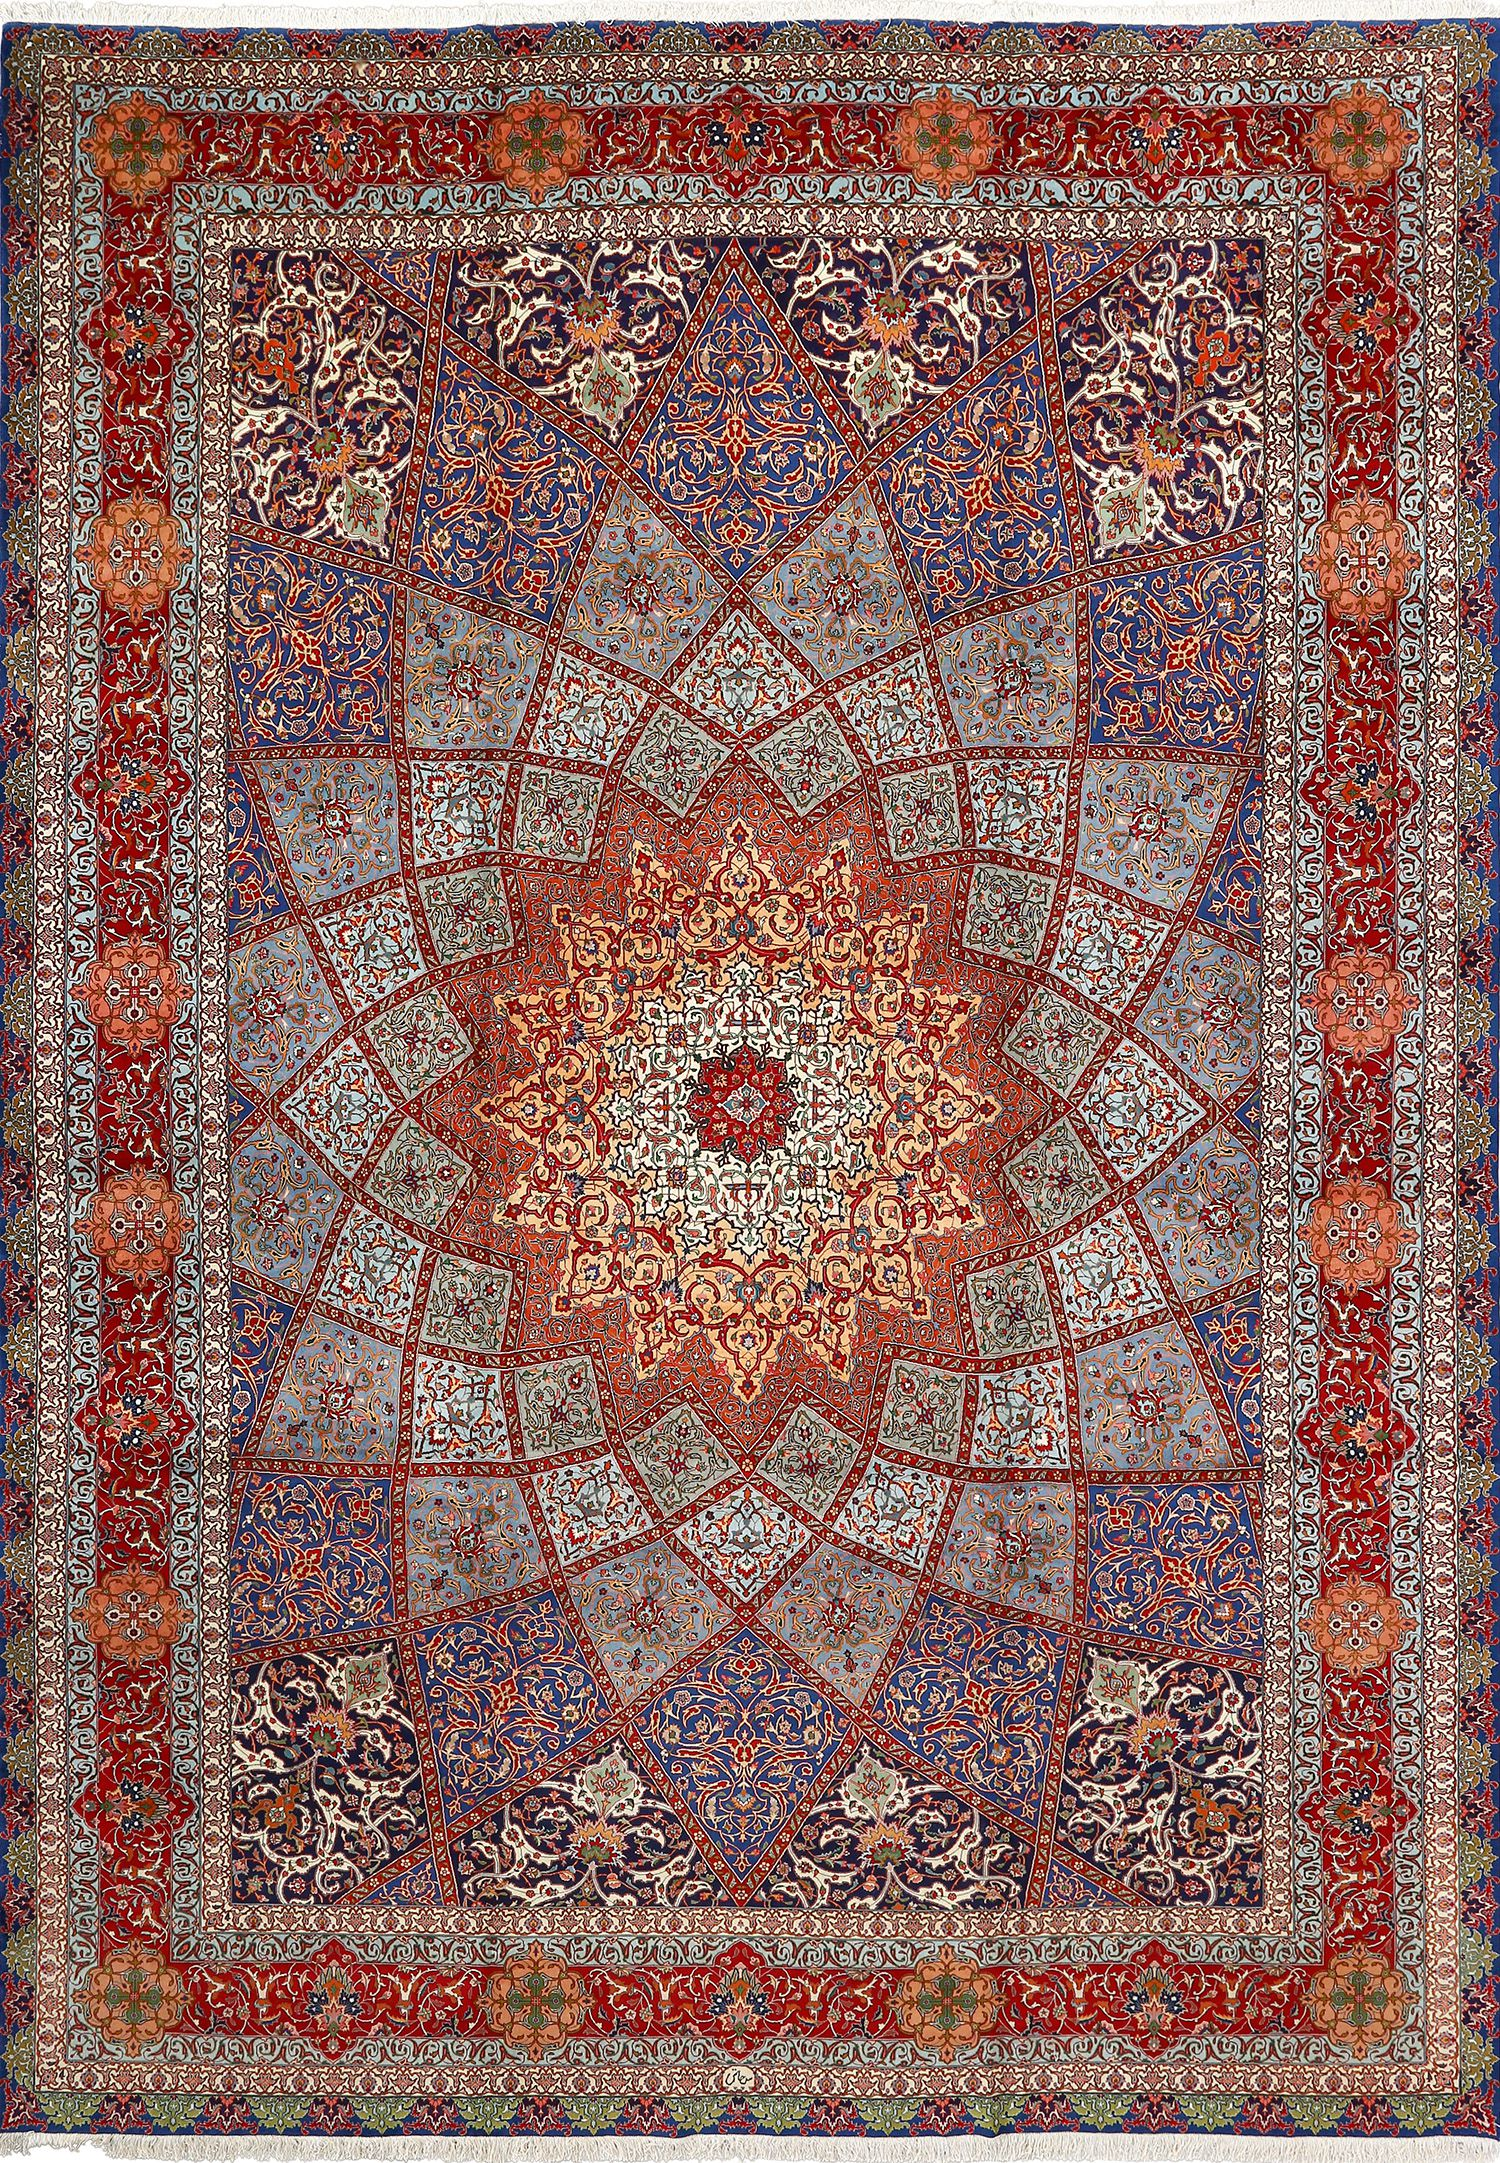 persian carpets persian carpet plus turkish rug large plus inexpensive turkish rugs plus EBOTAEK